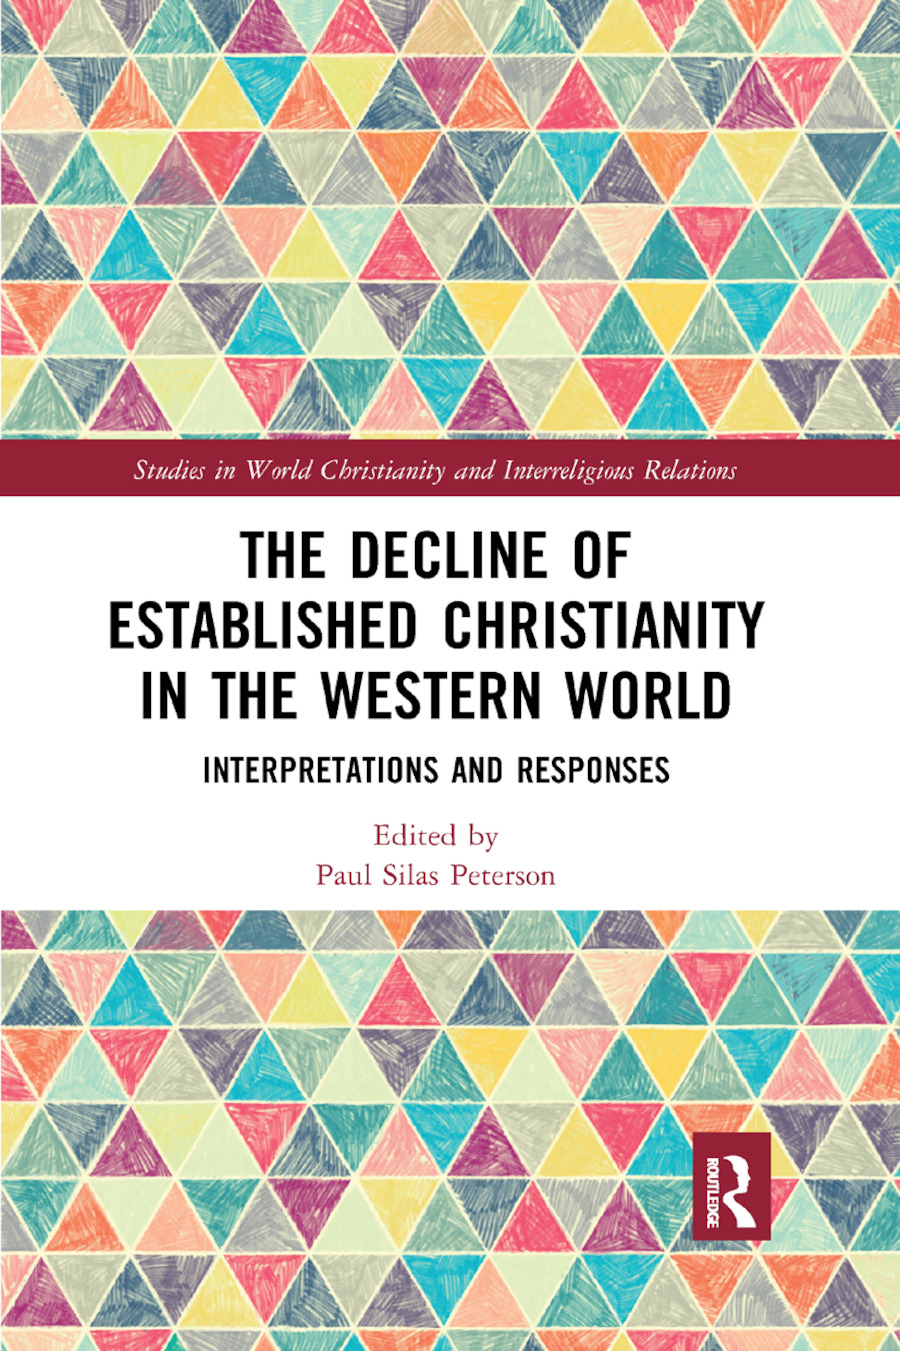 The Decline of Established Christianity in the Western World